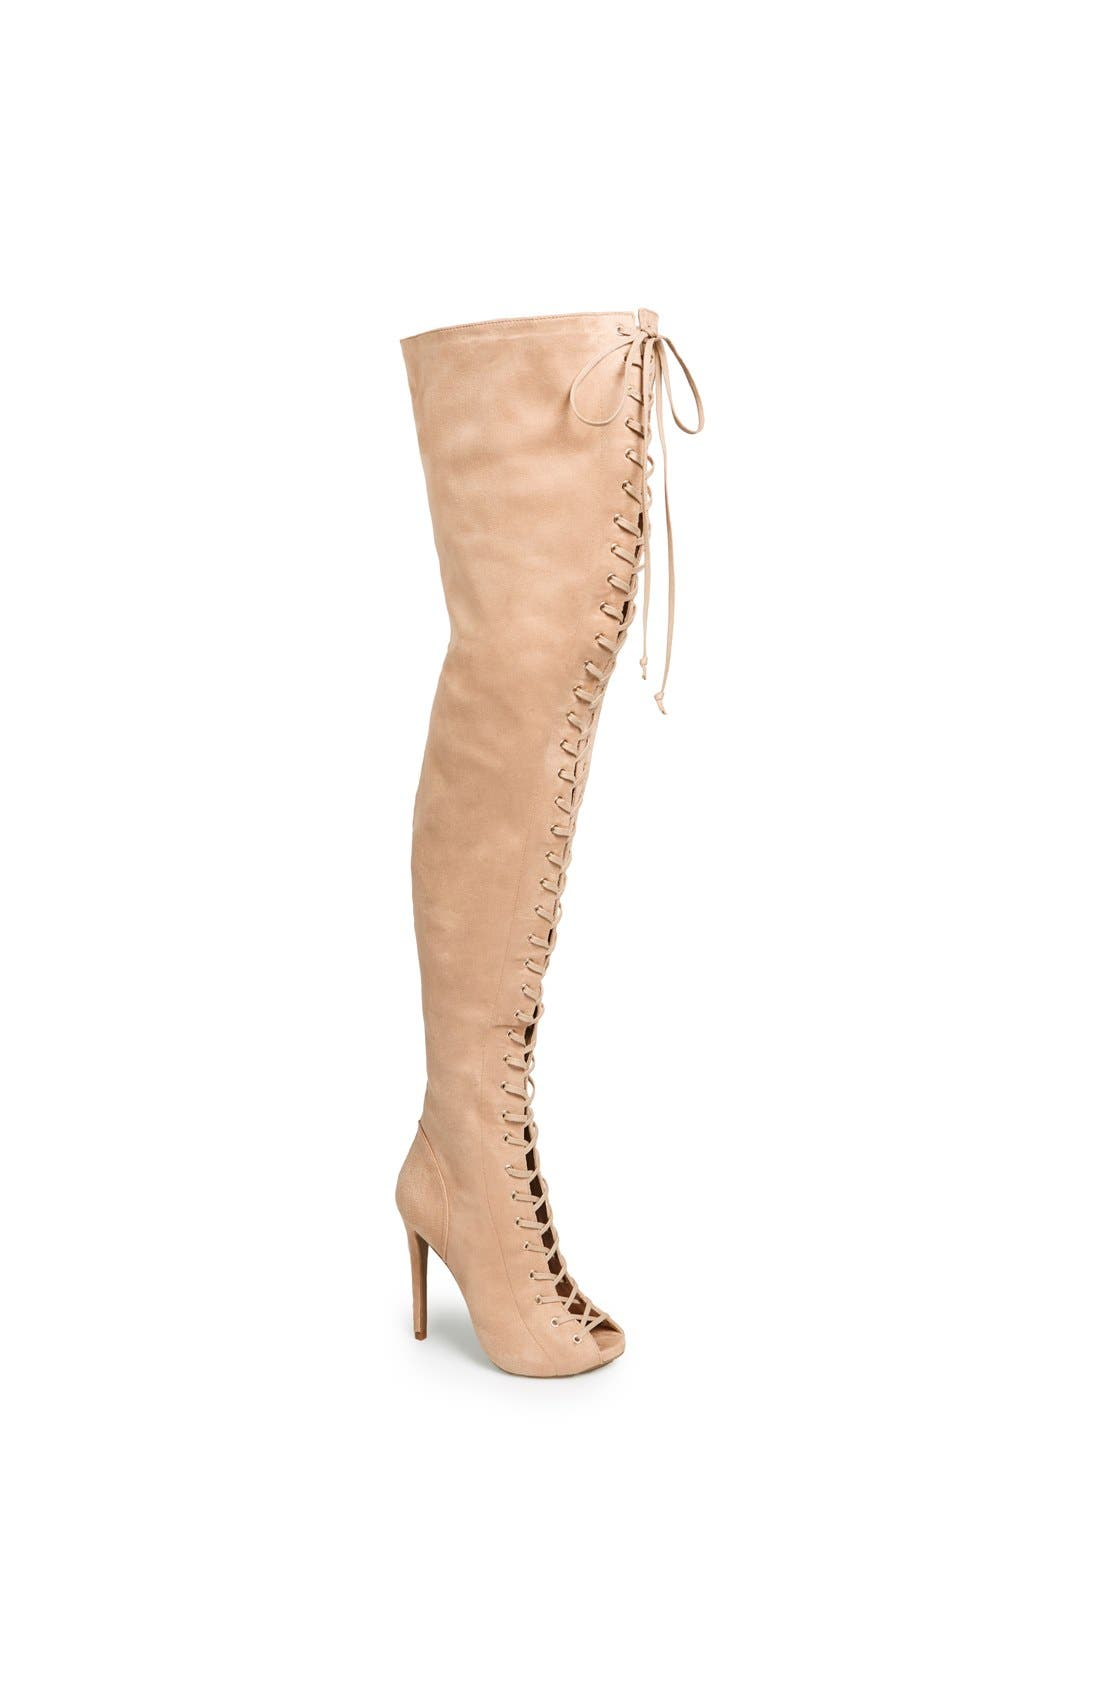 Alternate Image 1 Selected - ZiGi girl 'Piarry' Lace-Up Thigh-High Boot (Narrow Calf)